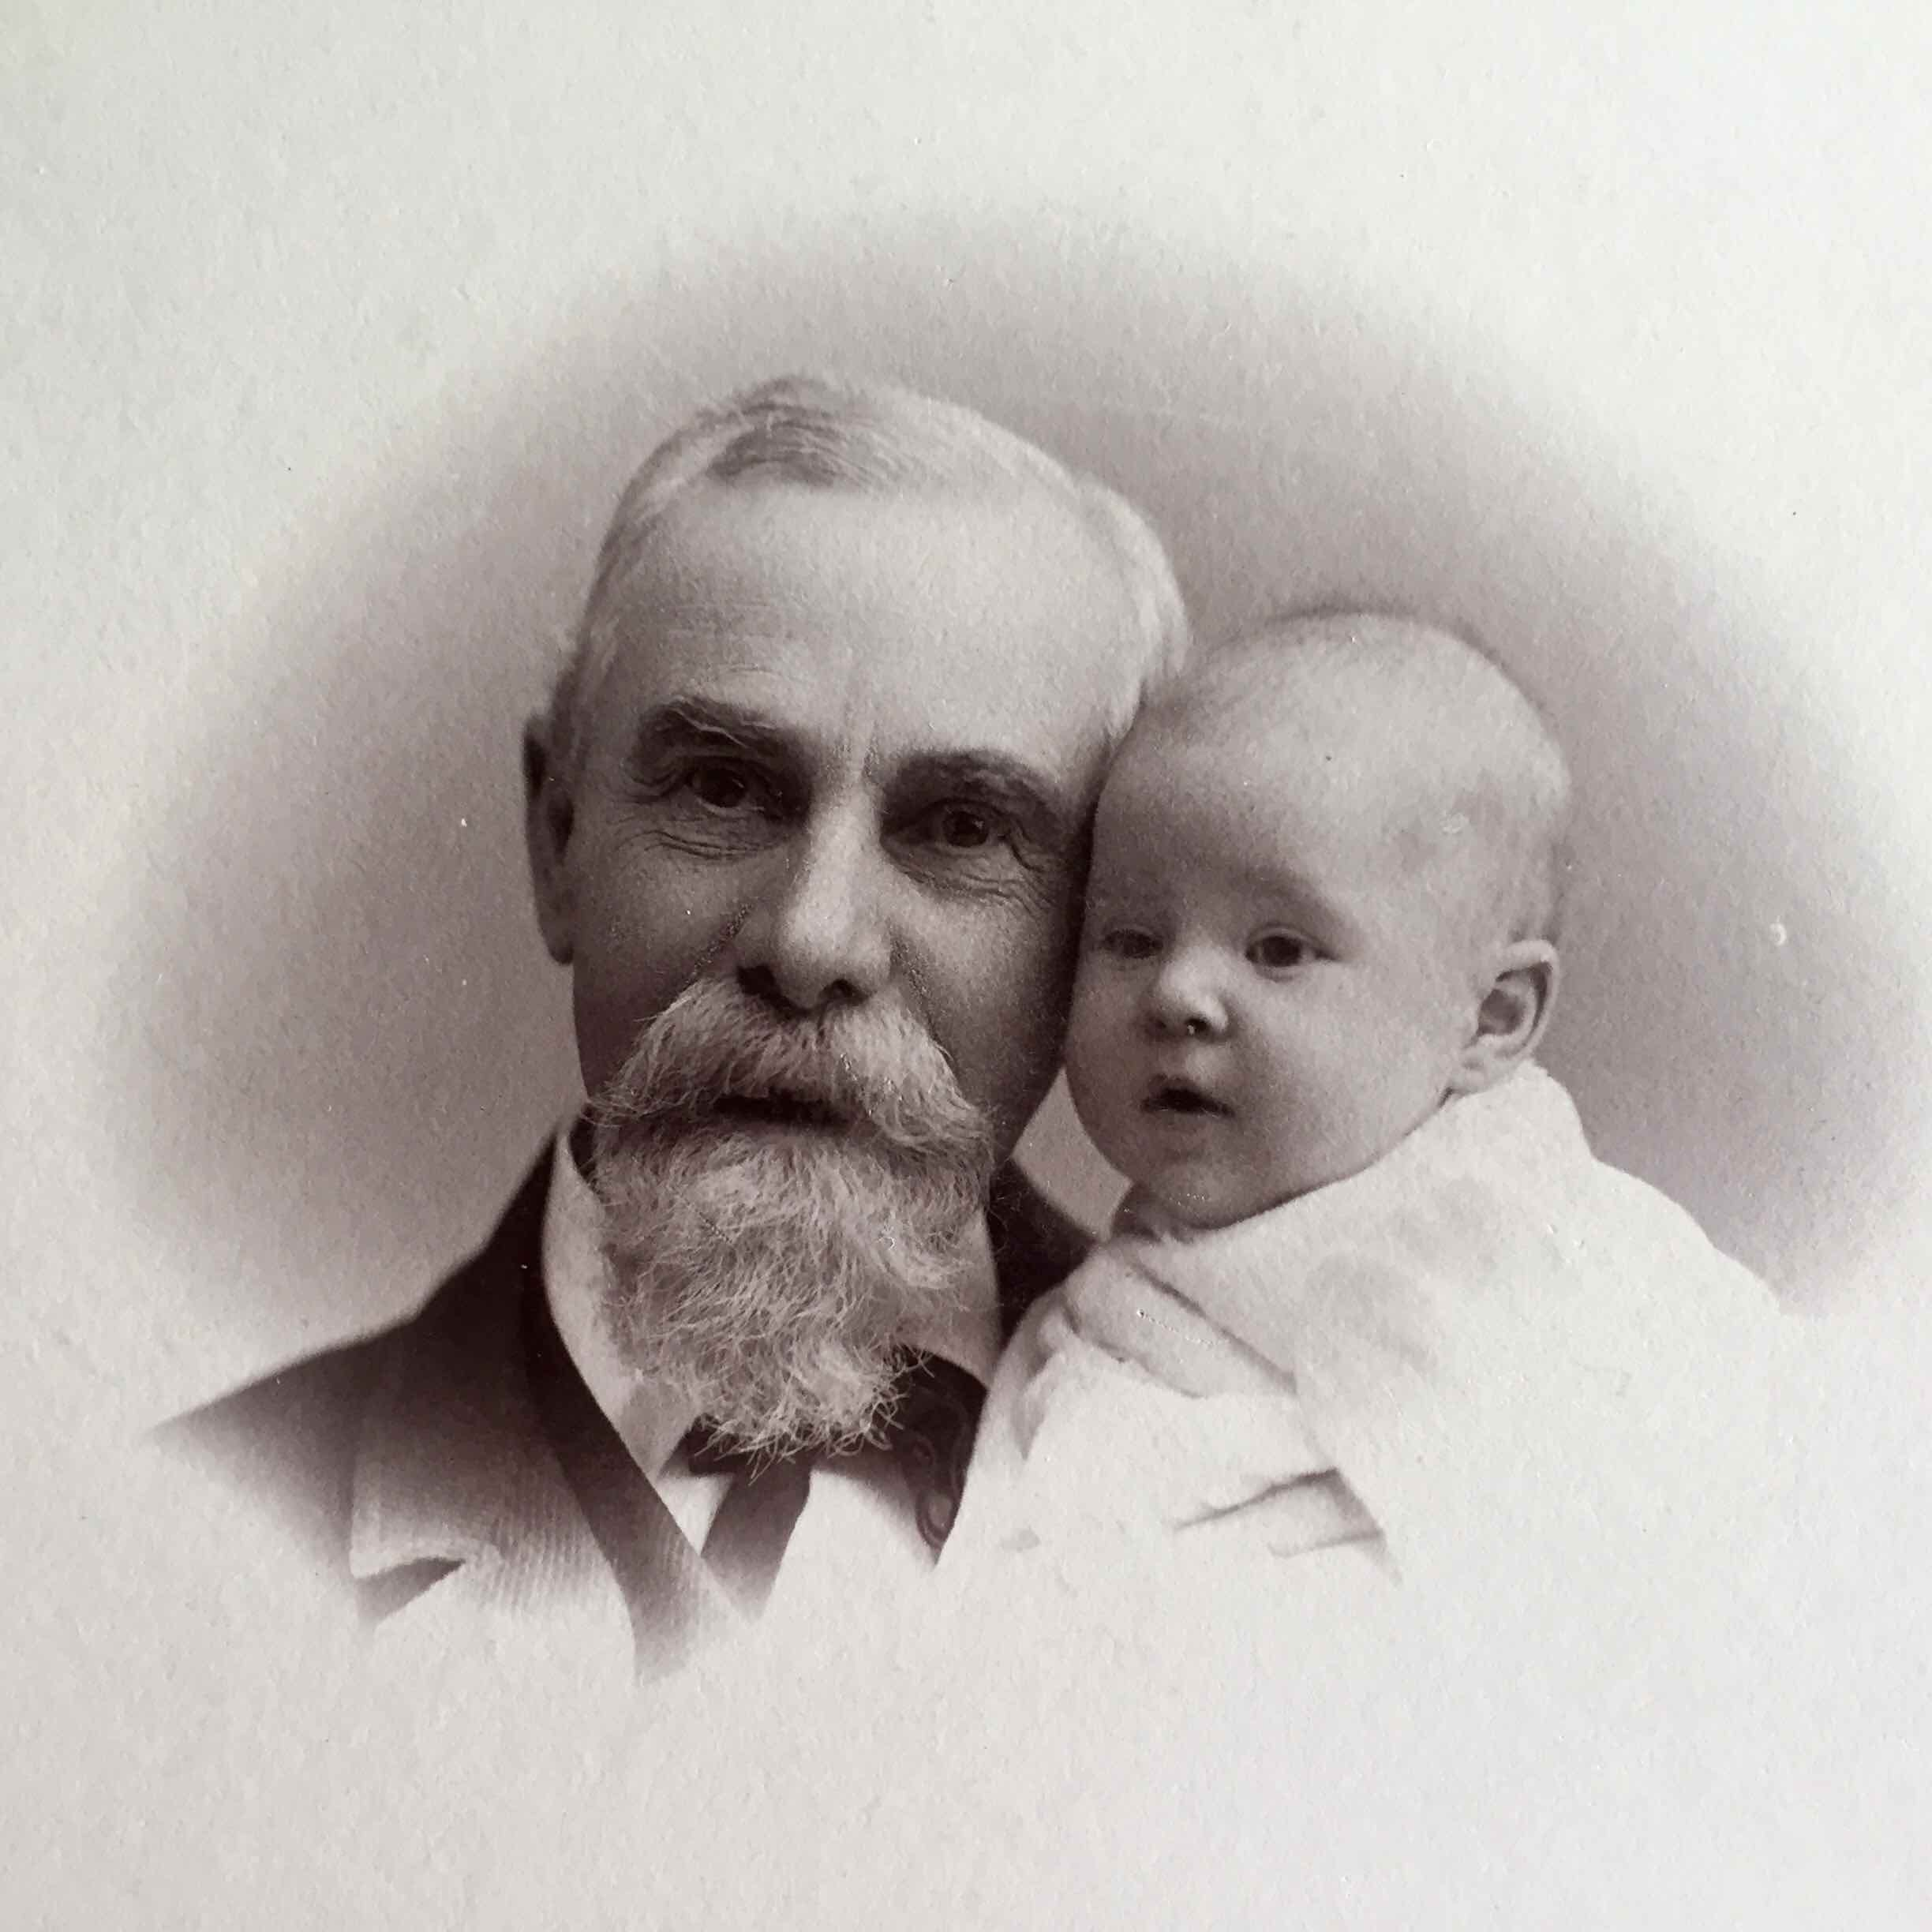 John Pels Manny and his granddaughter, Edith Sackett—who is Martha Manning's grandmother